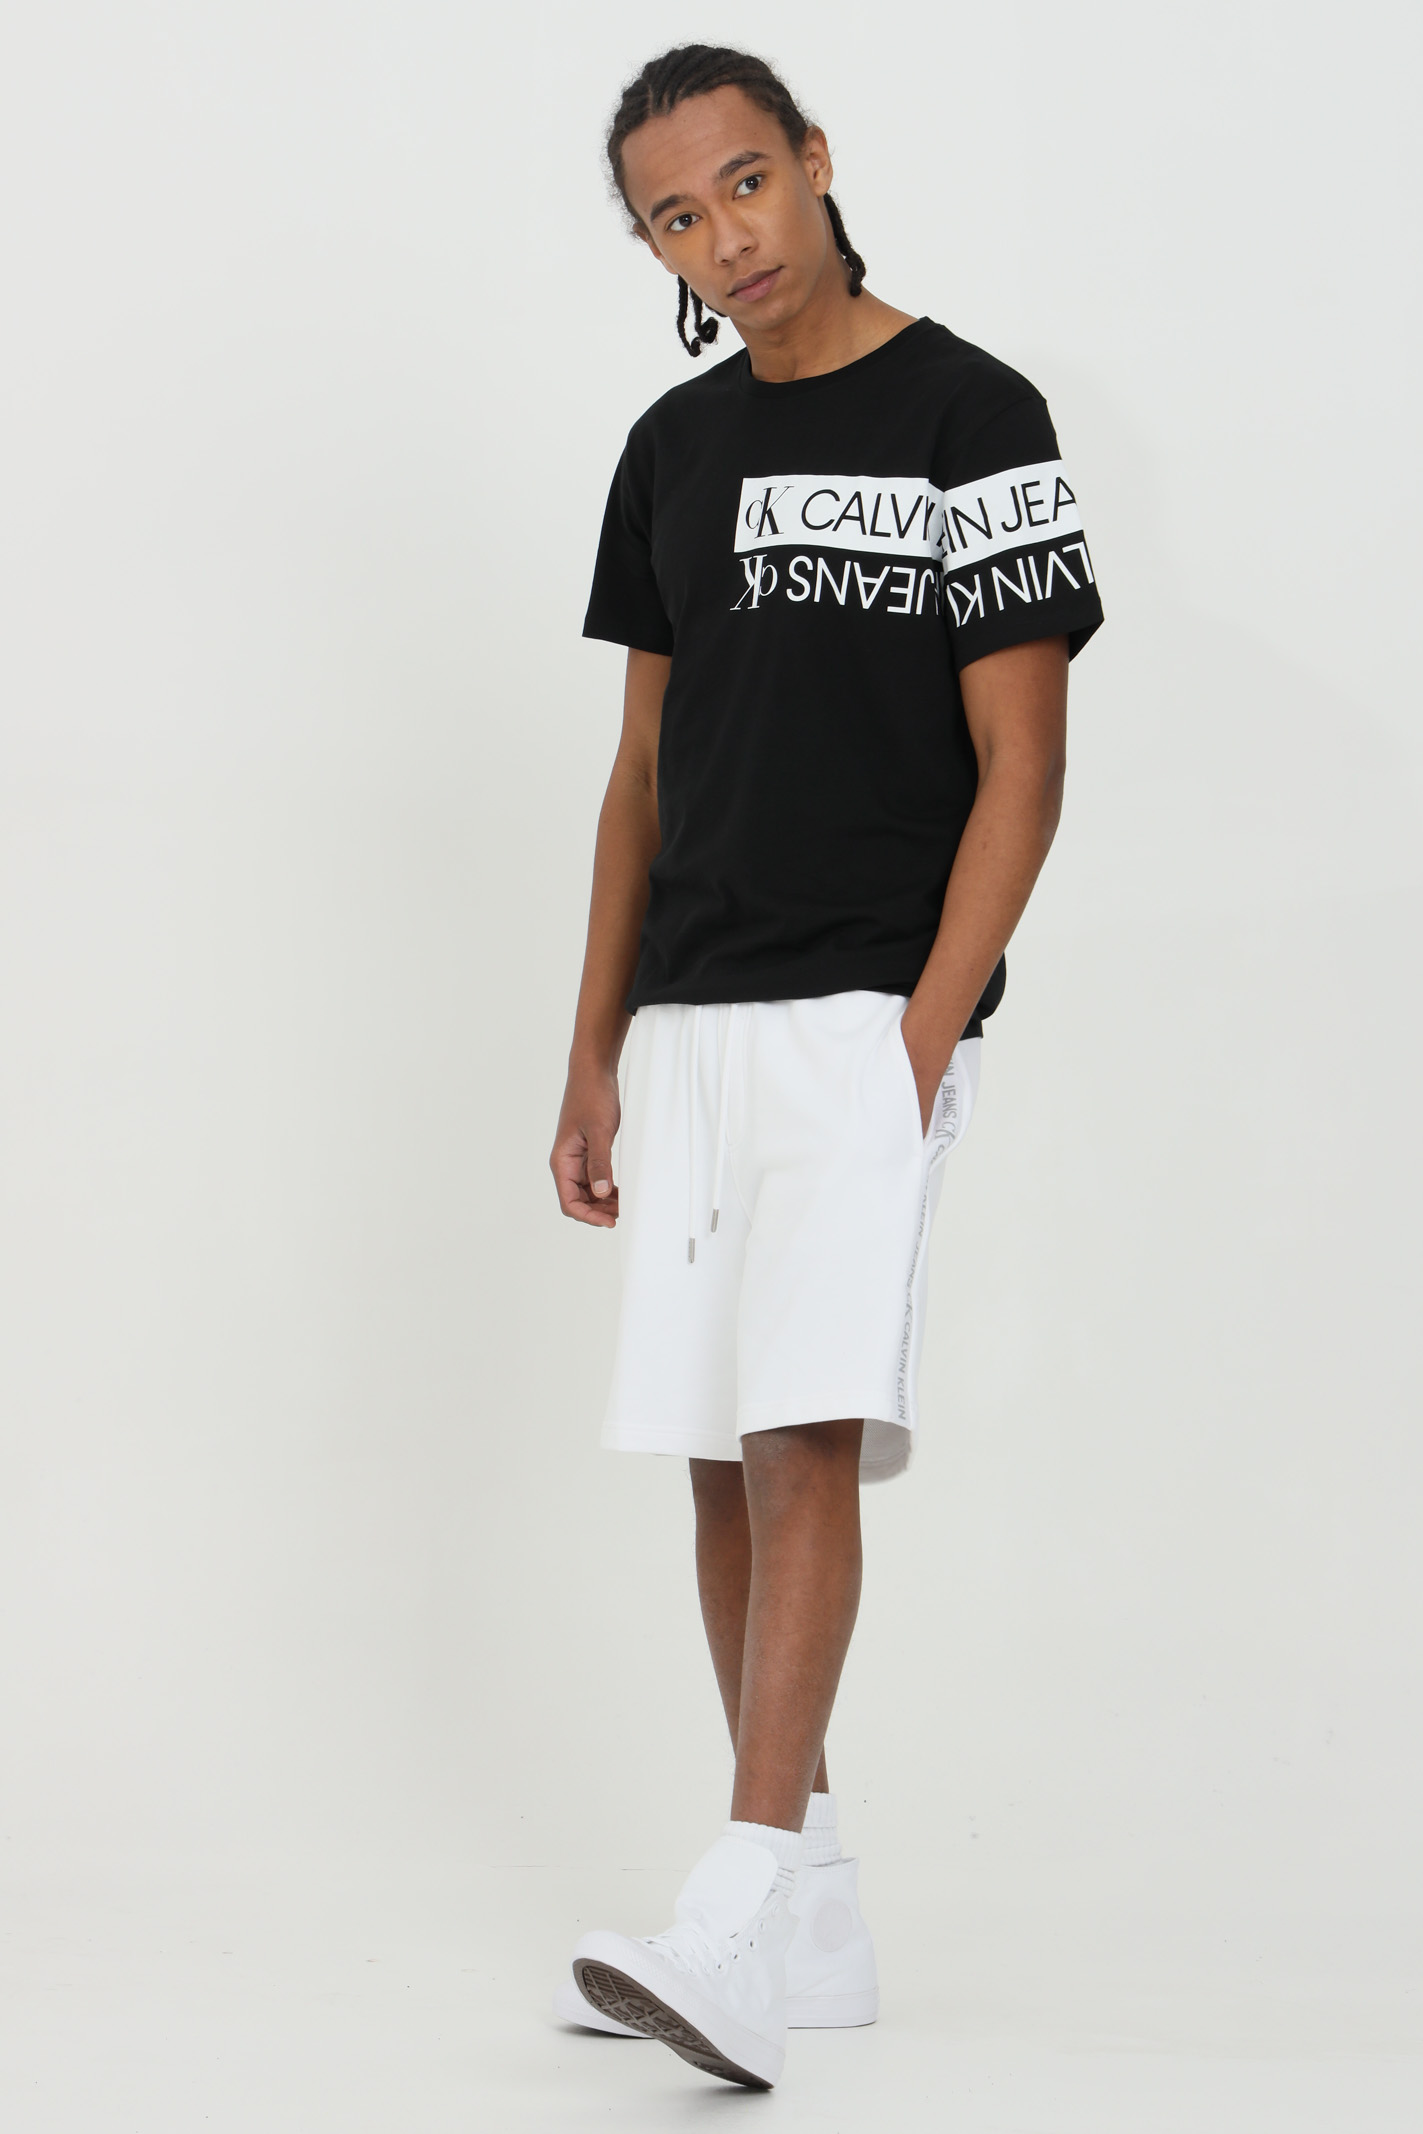 White shorts in organic cotton with side logo, front pockets and back pocket. Calvin klein logo in inlaid knit on the side seams CALVIN KLEIN   Shorts   J30J317377YAF